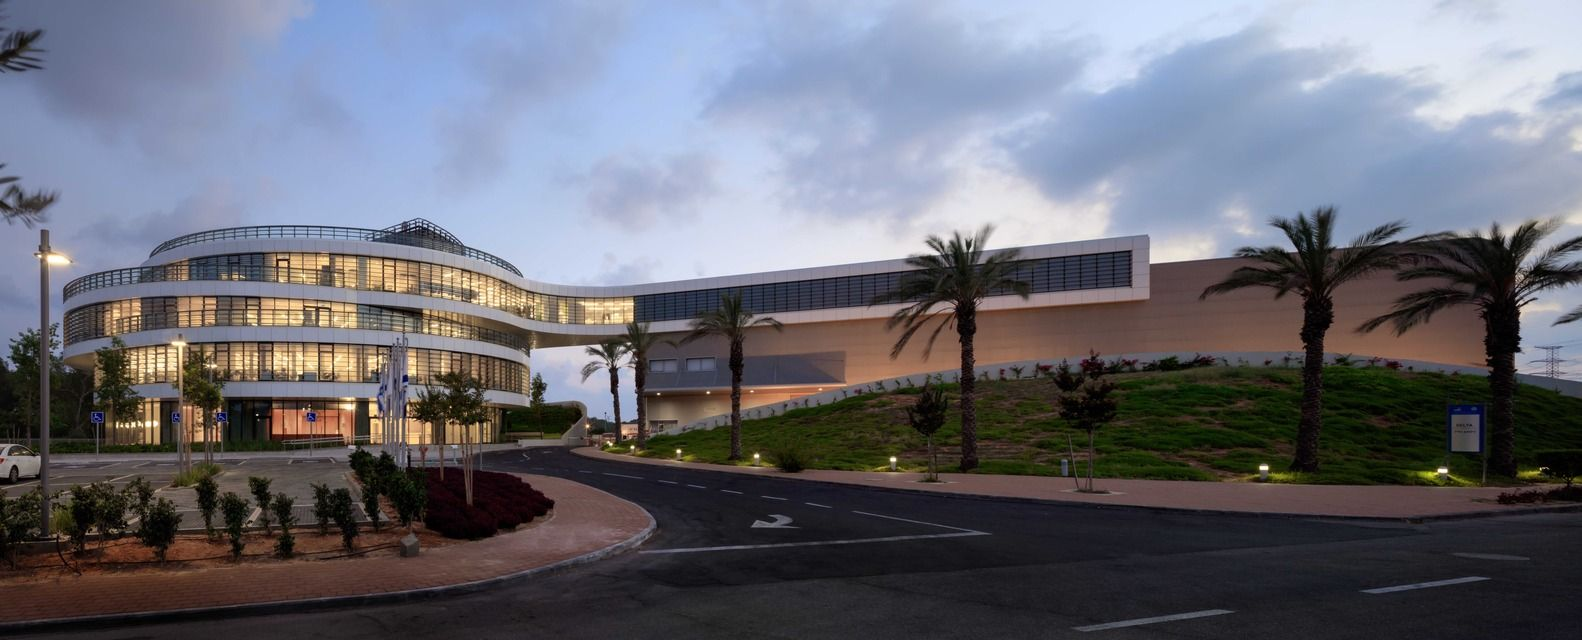 Gallery of delta galil auerbach halevy architects 8